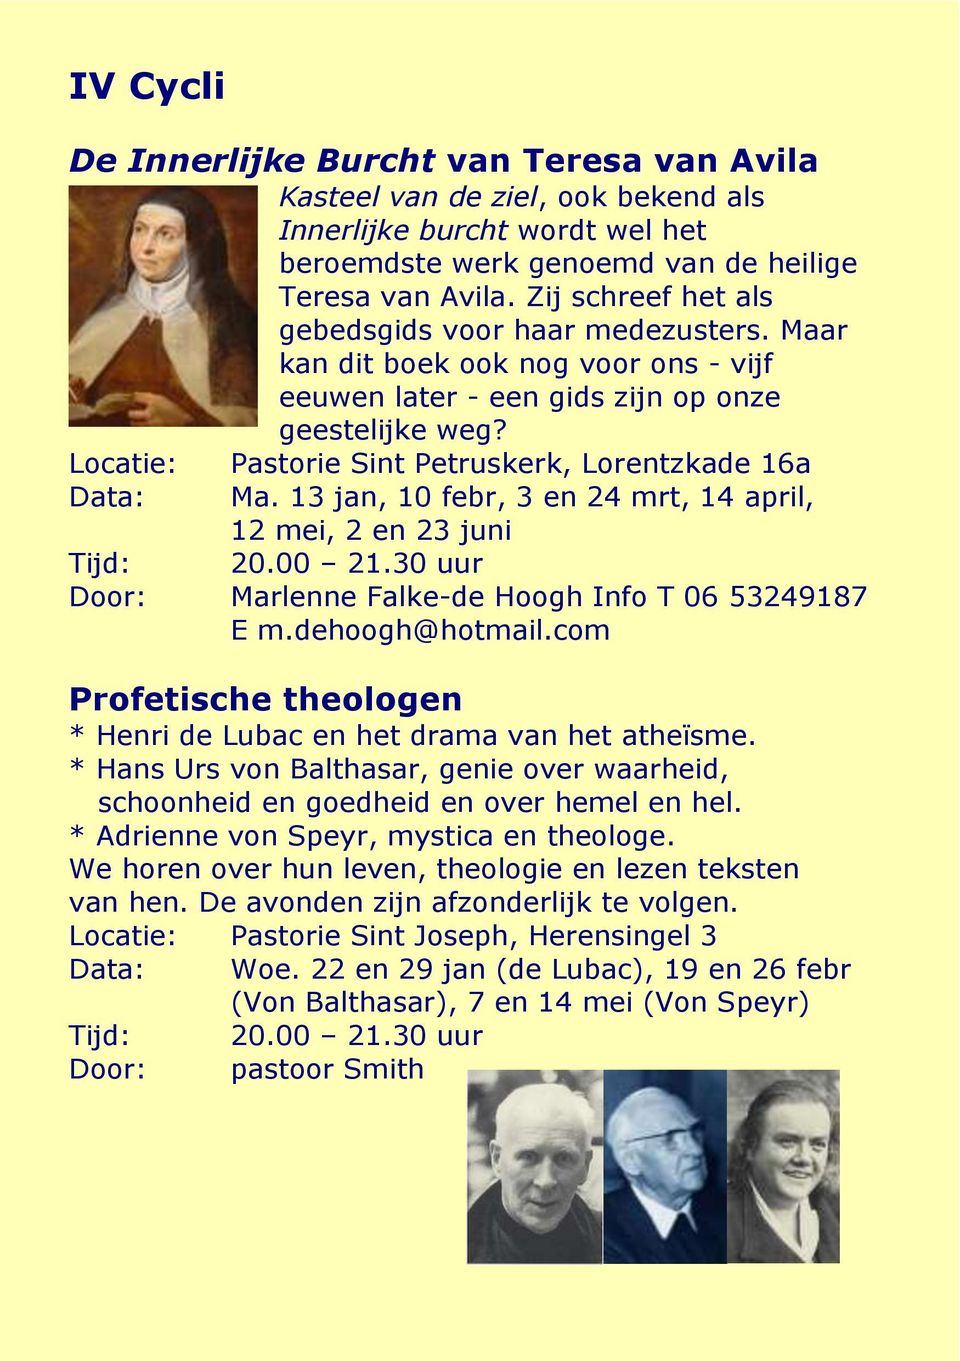 Locatie: Pastorie Sint Petruskerk, Lorentzkade 16a Data: Ma. 13 jan, 10 febr, 3 en 24 mrt, 14 april, 12 mei, 2 en 23 juni Door: Marlenne Falke-de Hoogh Info T 06 53249187 E m.dehoogh@hotmail.